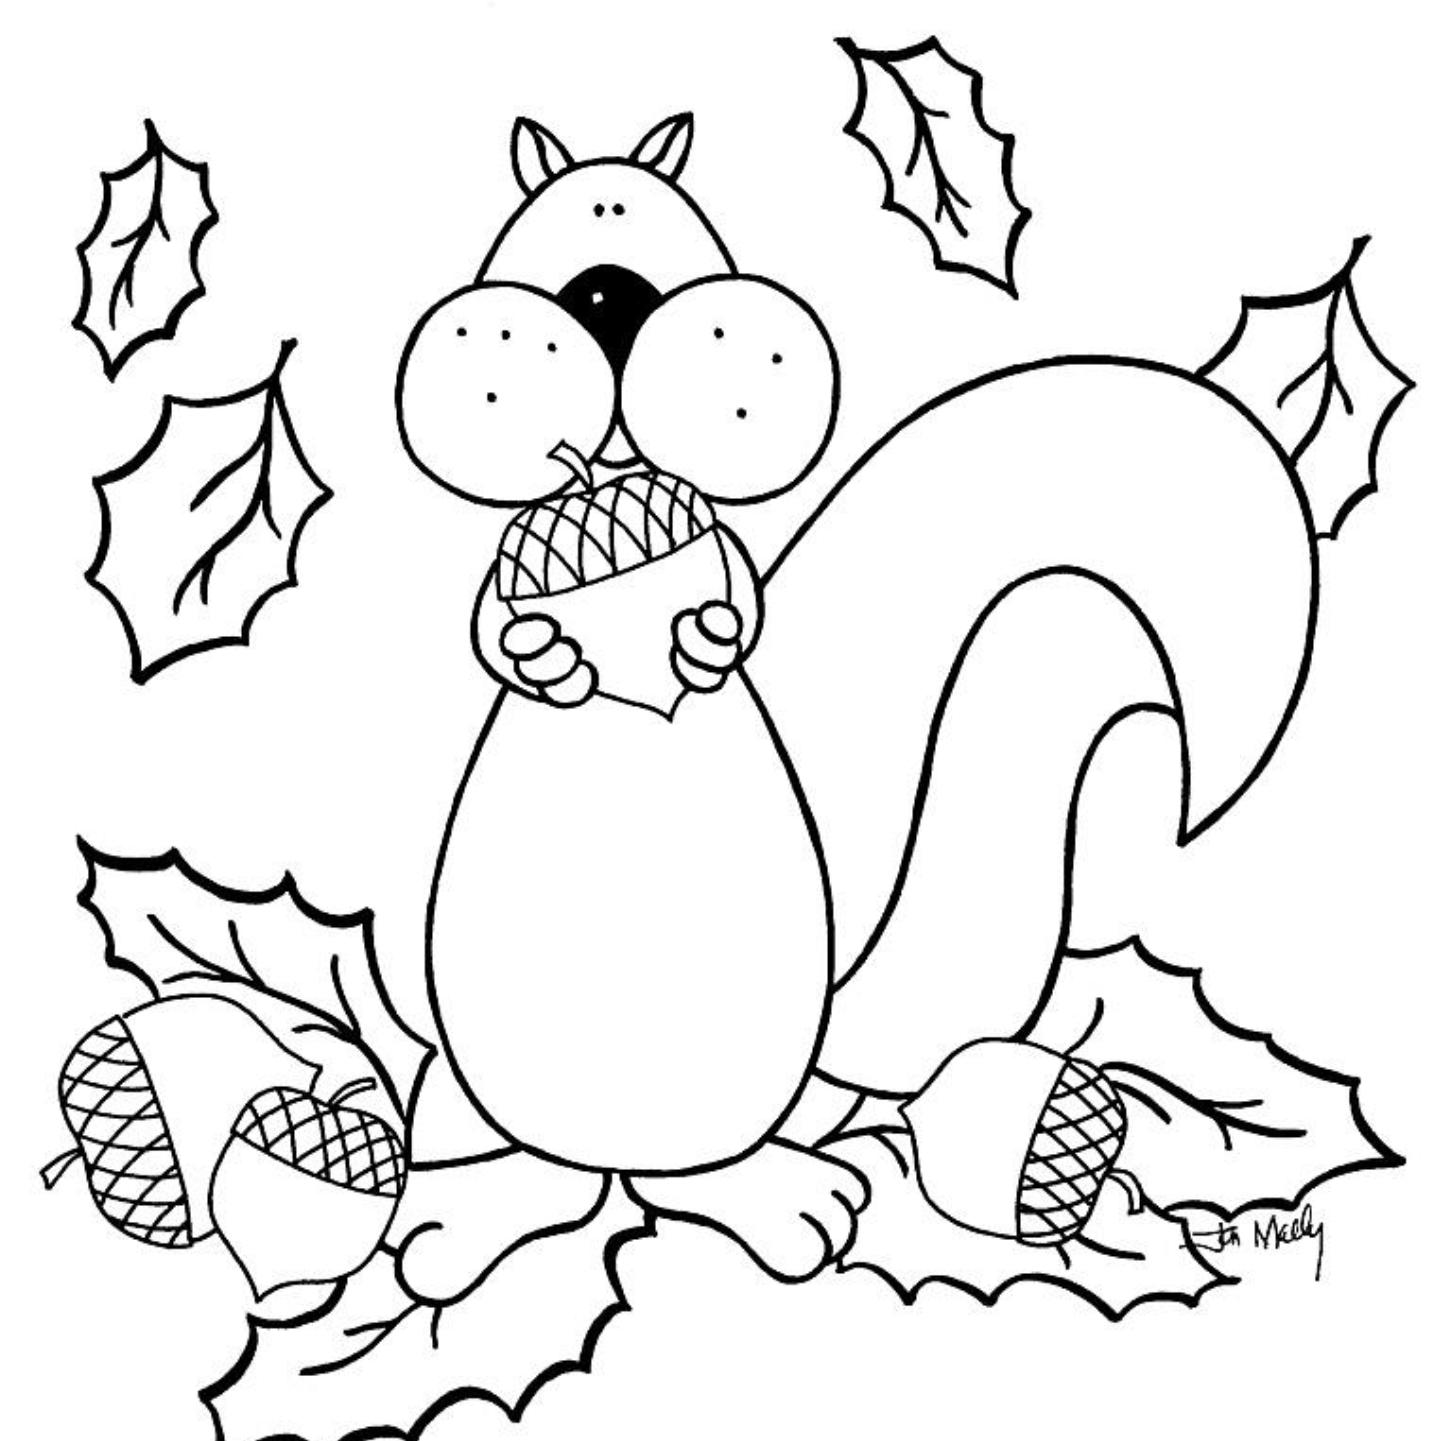 fulla coloring pages - photo#15